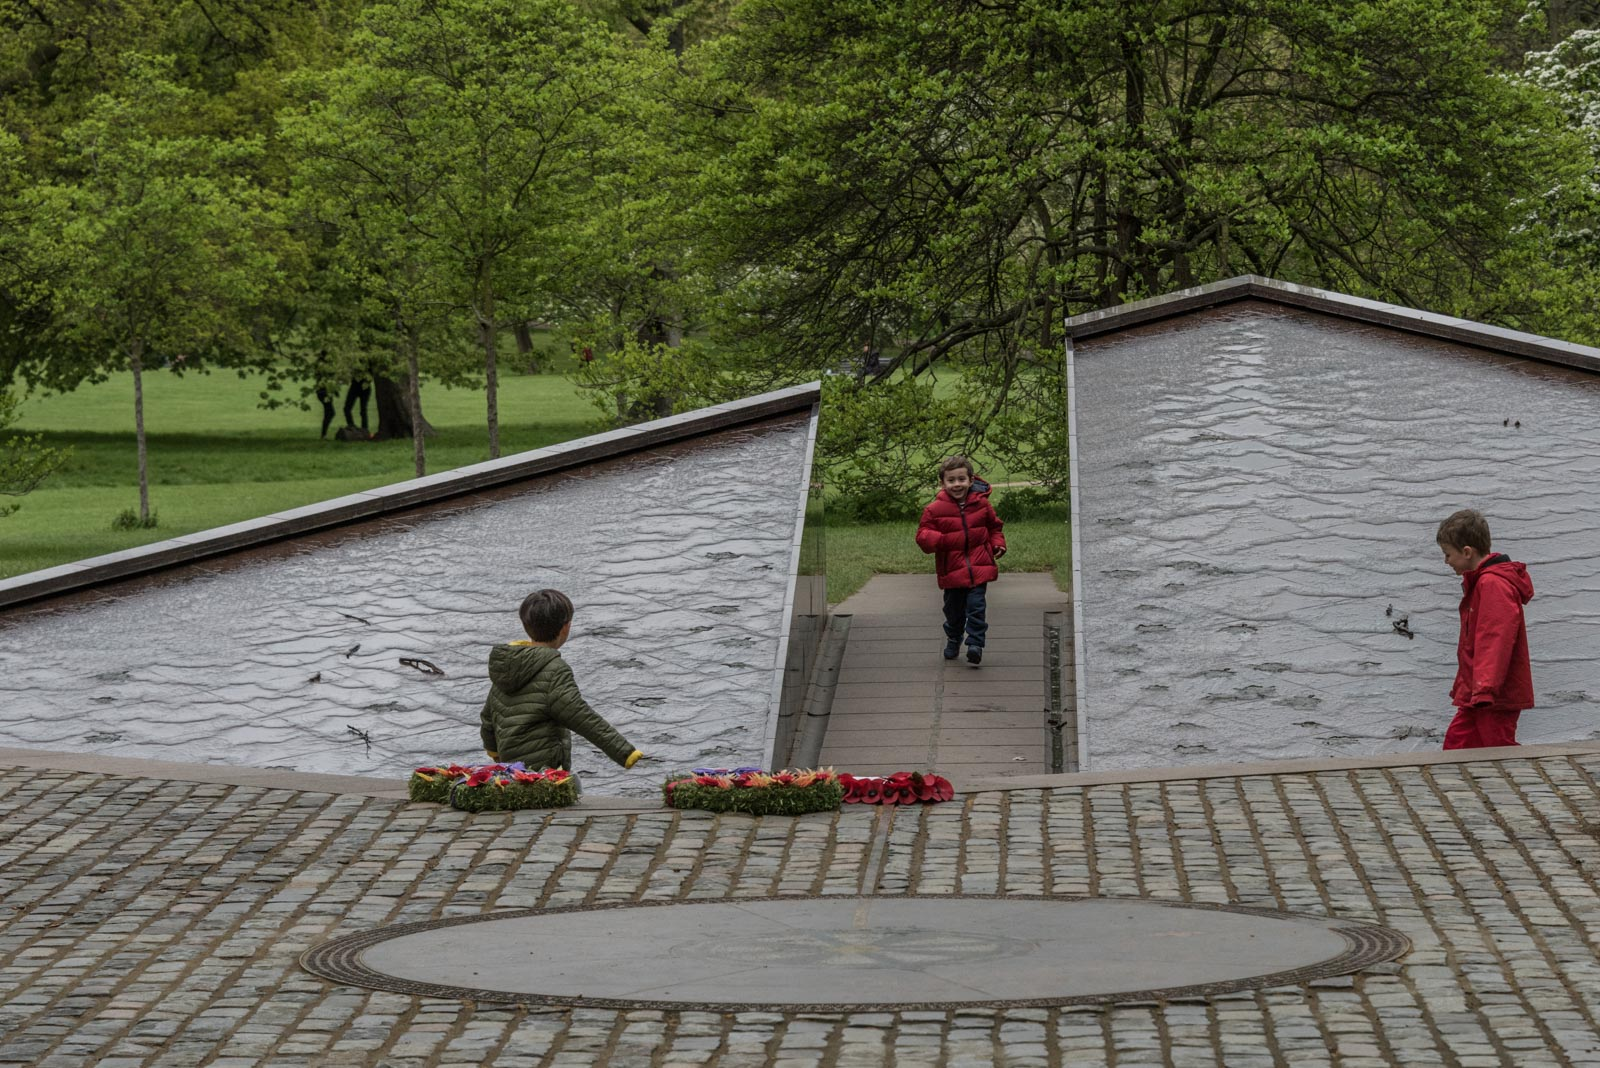 170417_Westminster_GreenPark_CanadianMemorial